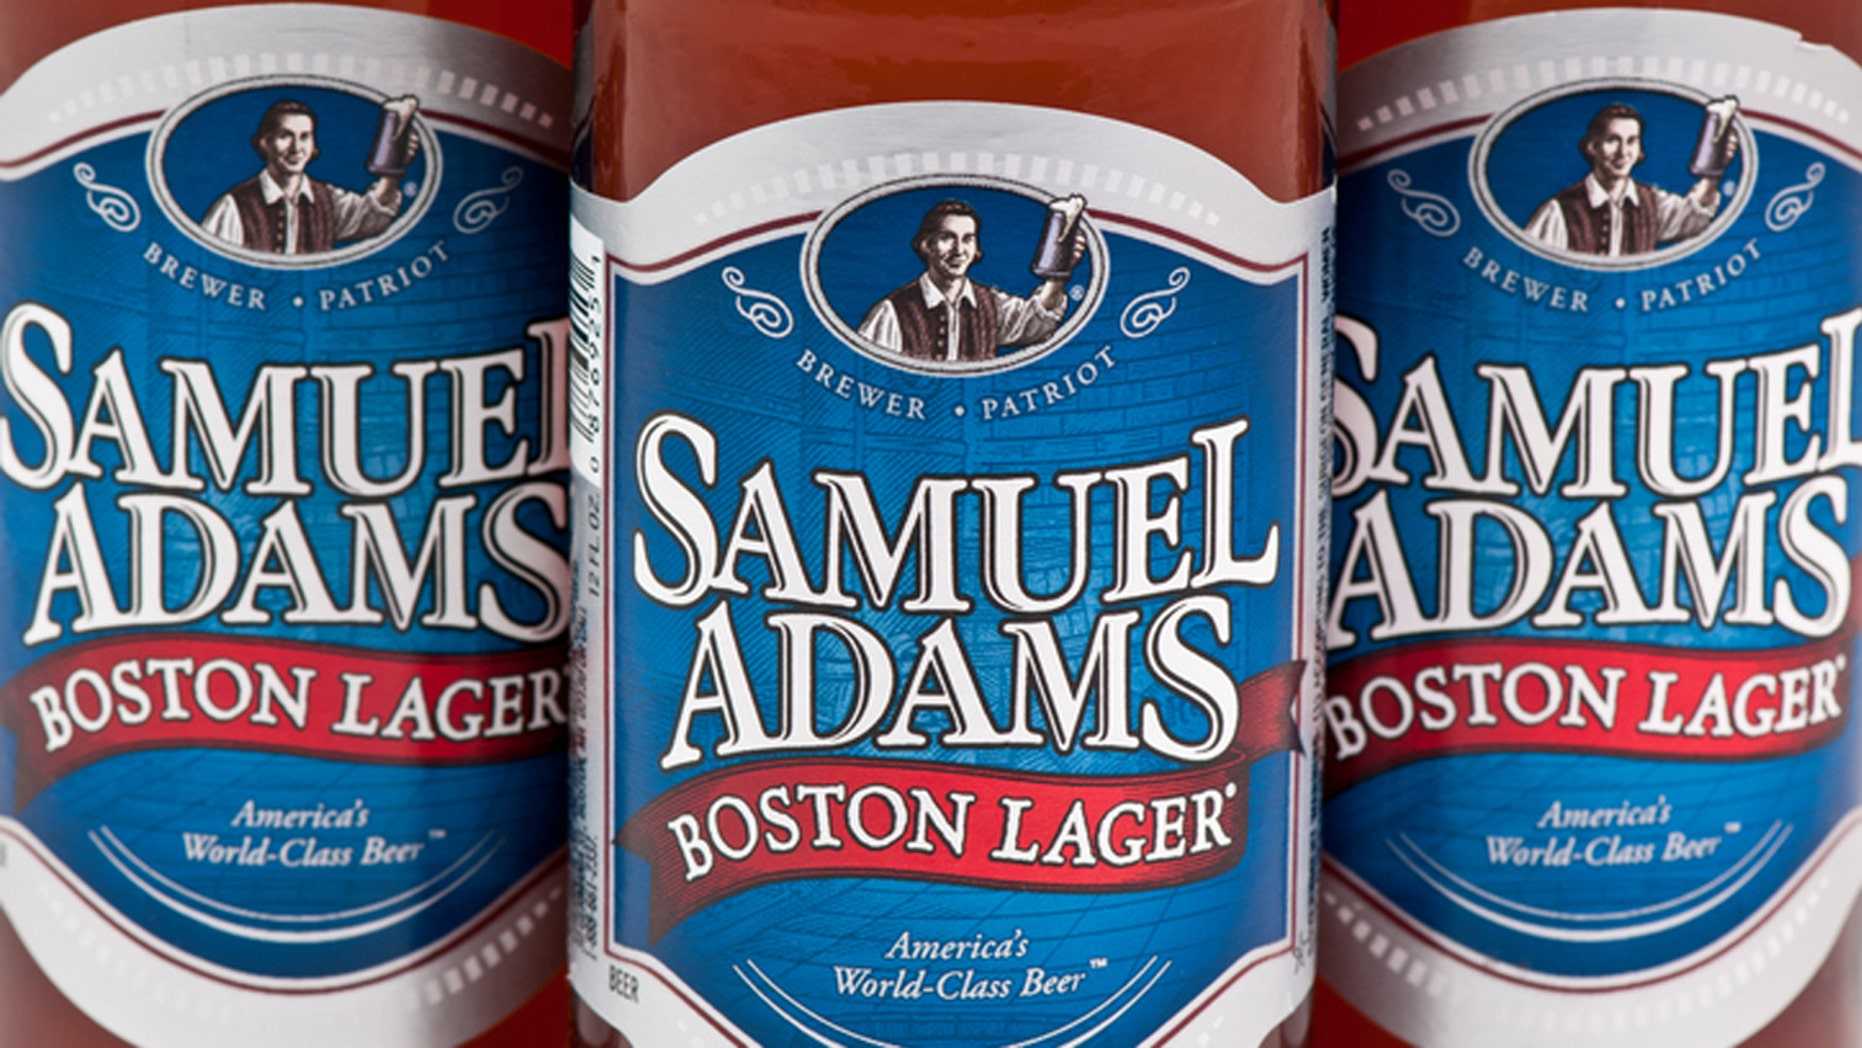 Marietta GA, USA - February 10, 2012: Close up of Samual Adams Boston Lager, 12 fl oz bottles. Samuel Adams is an American Craft Brewer defined as Small, Independent, and Traditional. Their Boston Lager is an excellent example of the fundamentals of a beer offering a full, rich flavor resulting from hand selected ingredients and traditional four vessel brewing.